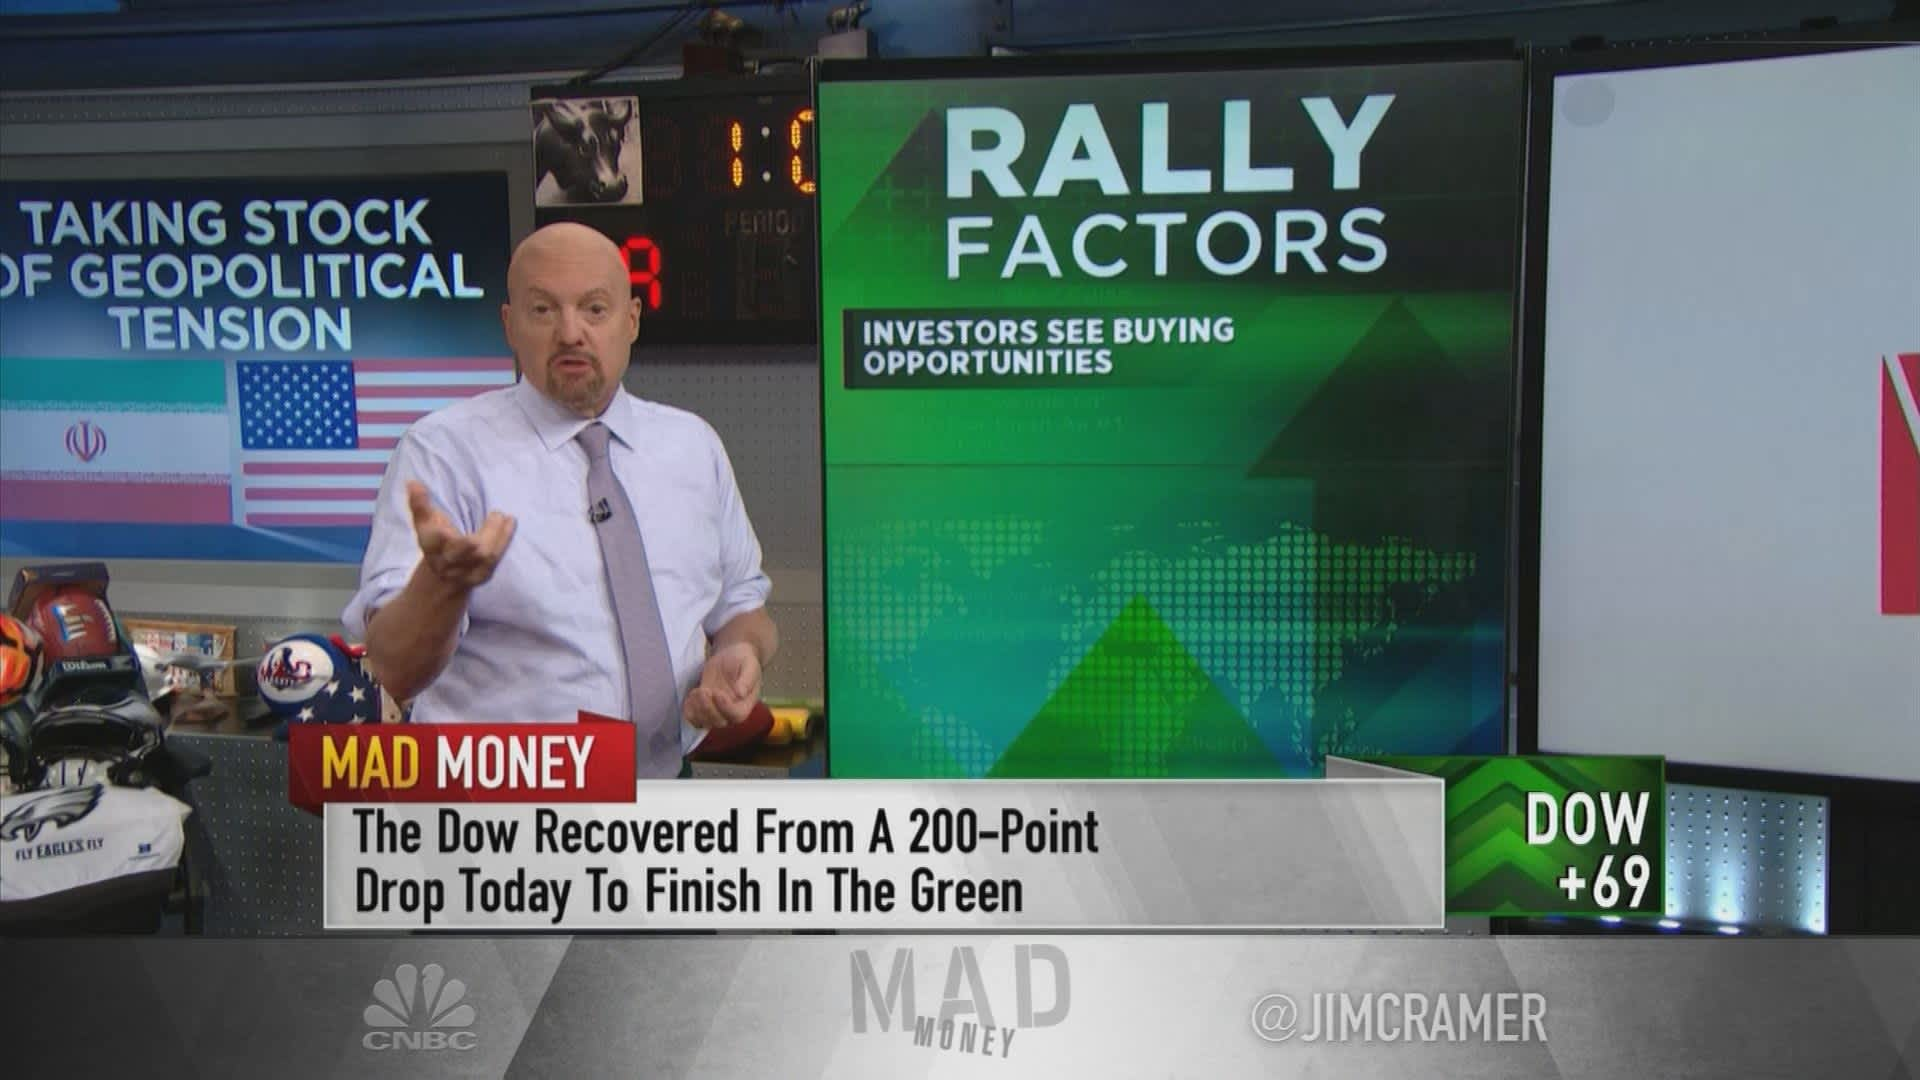 Jim Cramer's US-Iran conflict playbook: 'Cash lets you take advantage' of buying opportunities